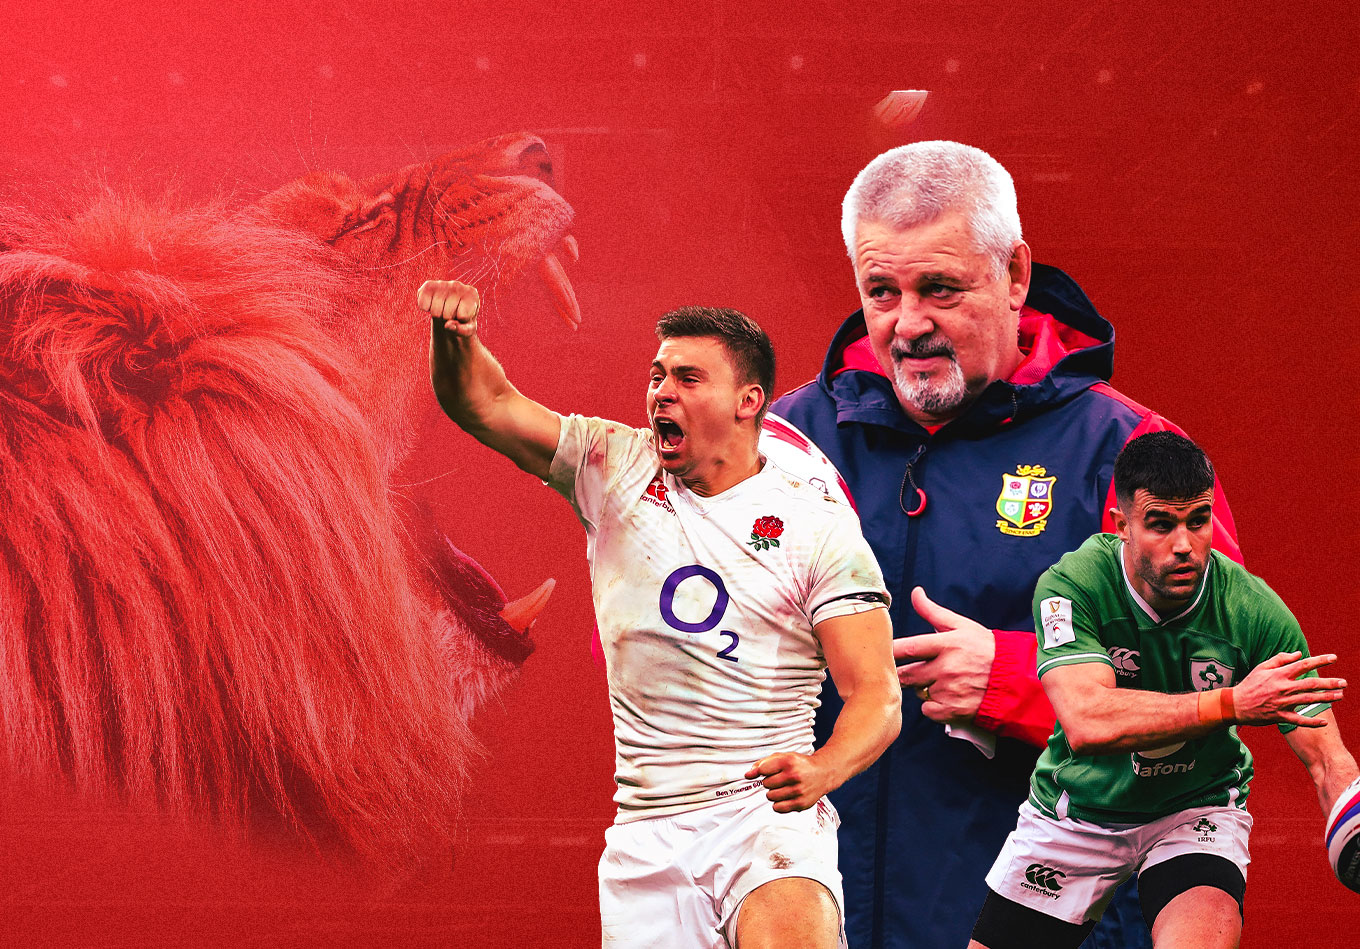 2021 Lions Squad Selection: Who Goes to South Africa, Part III